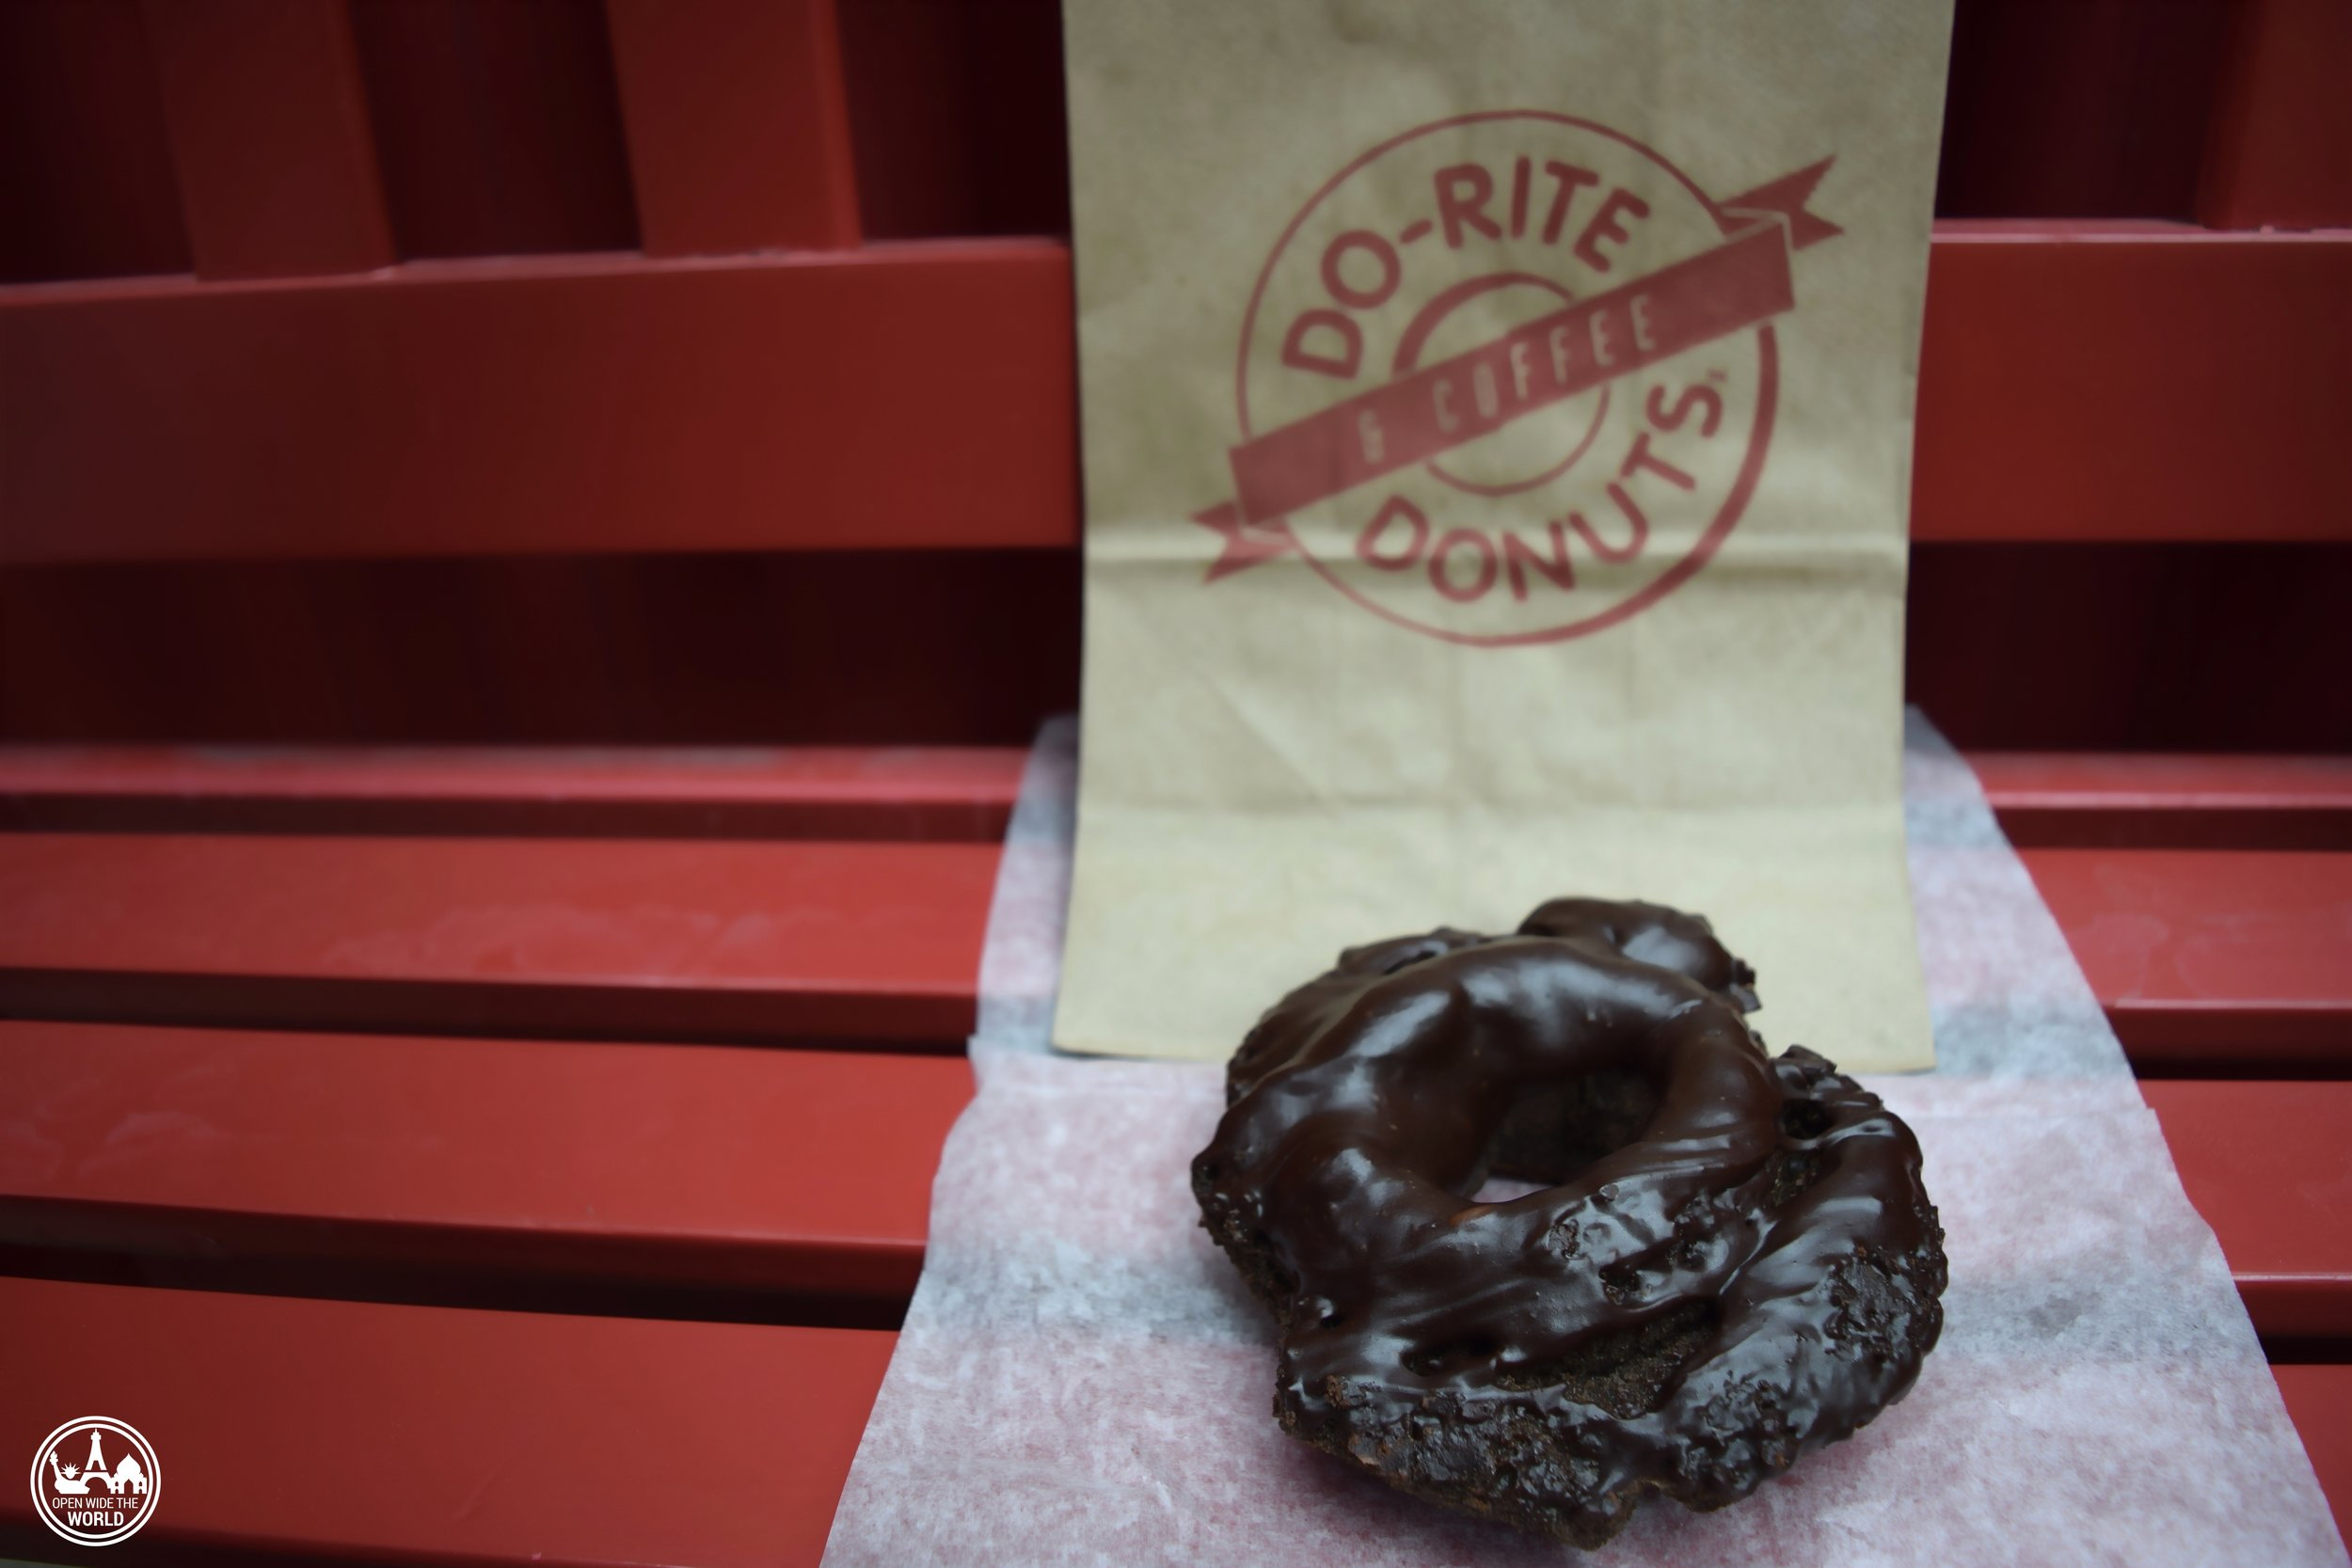 Chicago, America's Second City, actually ranks  eighth  in the nation for its per capita availability of donuts. Despite the city's relatively low ranking, it is home to a respectable artisanal doughnut community, turning out some amazing craft donuts. Here are nine not to miss!